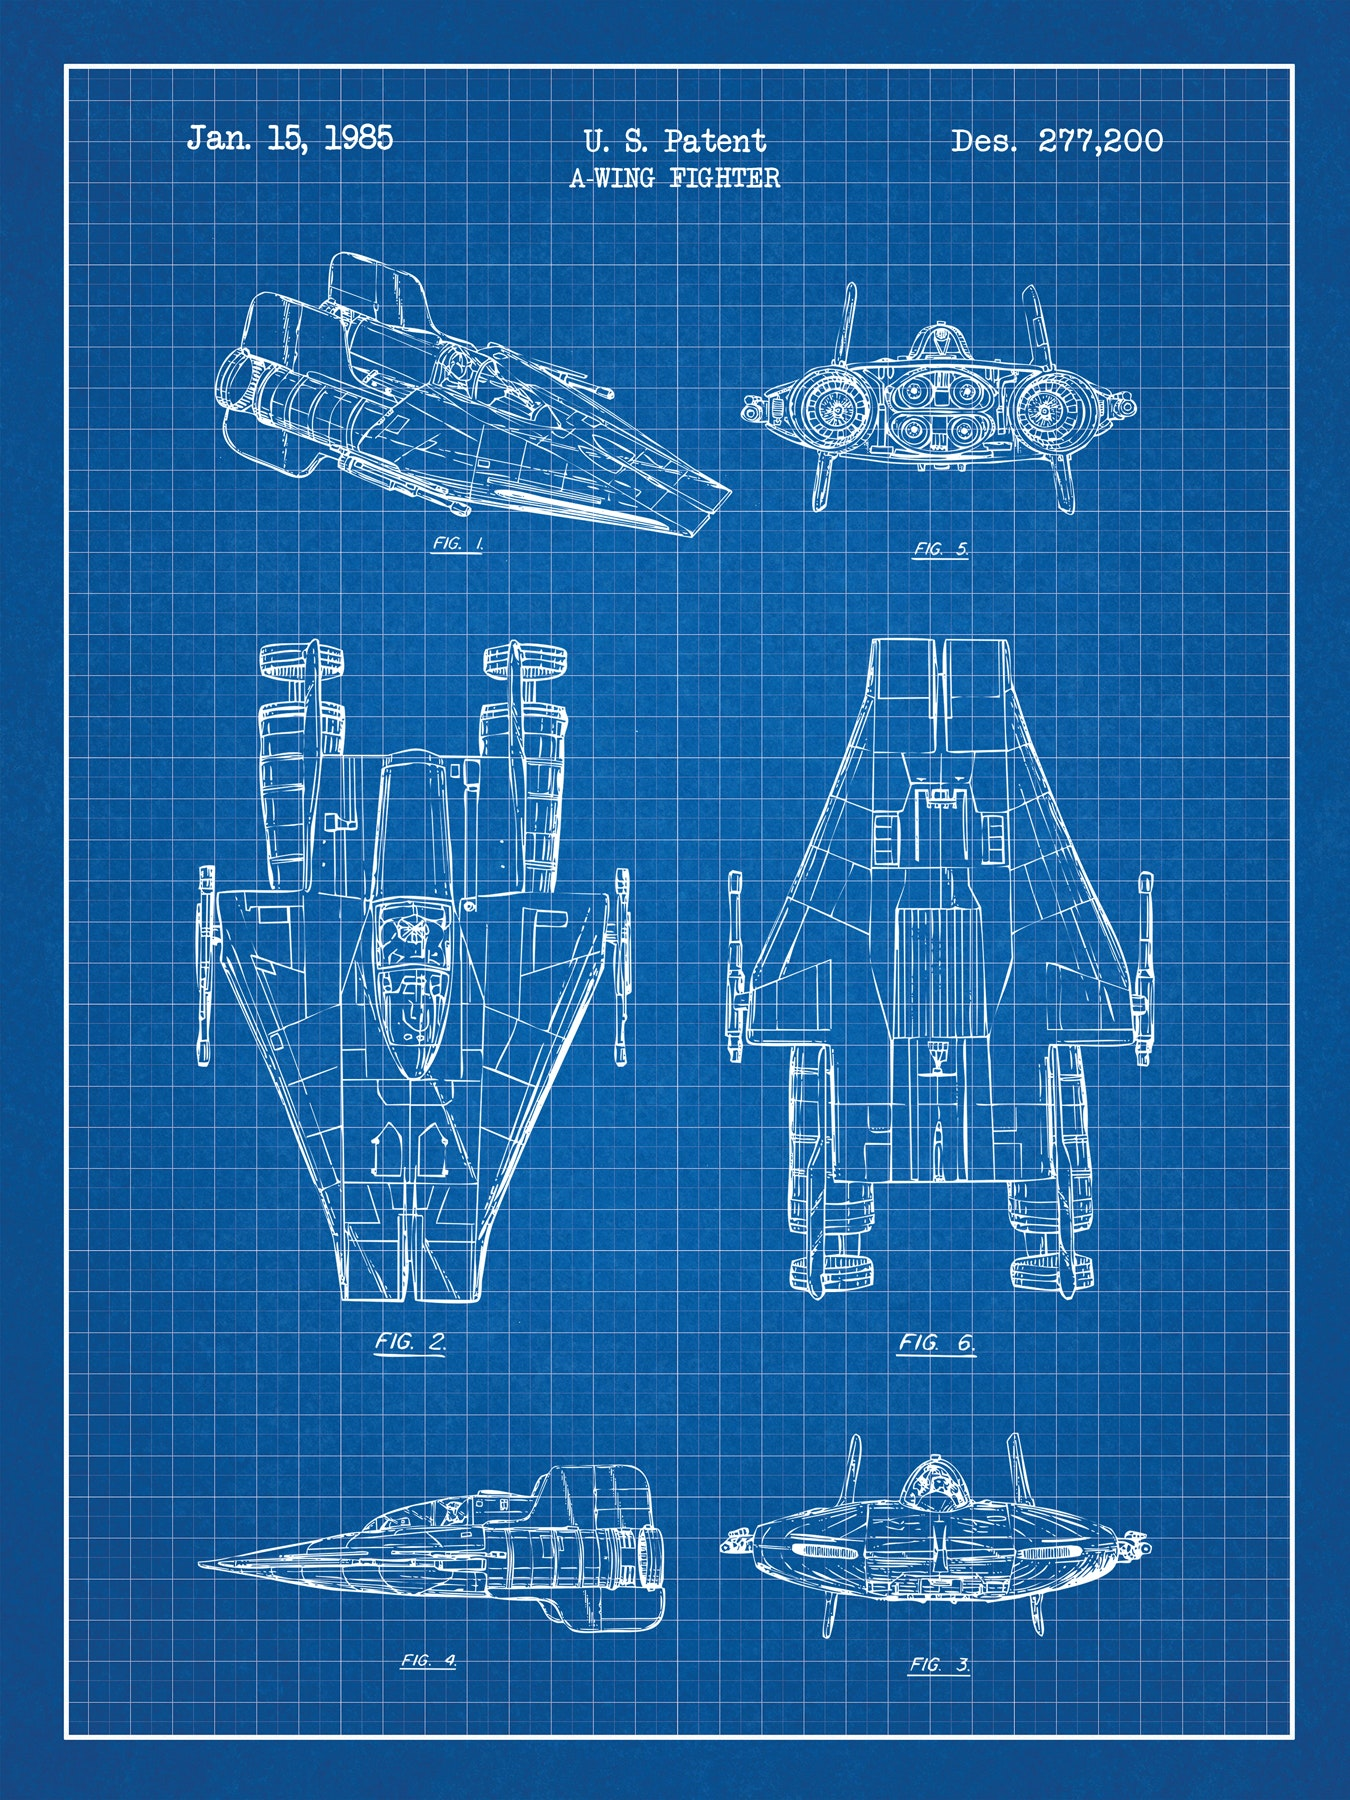 SP-SYFI-A-Wing-Fighter-277,200-Blue-Grid-White-Ink-24-Inches